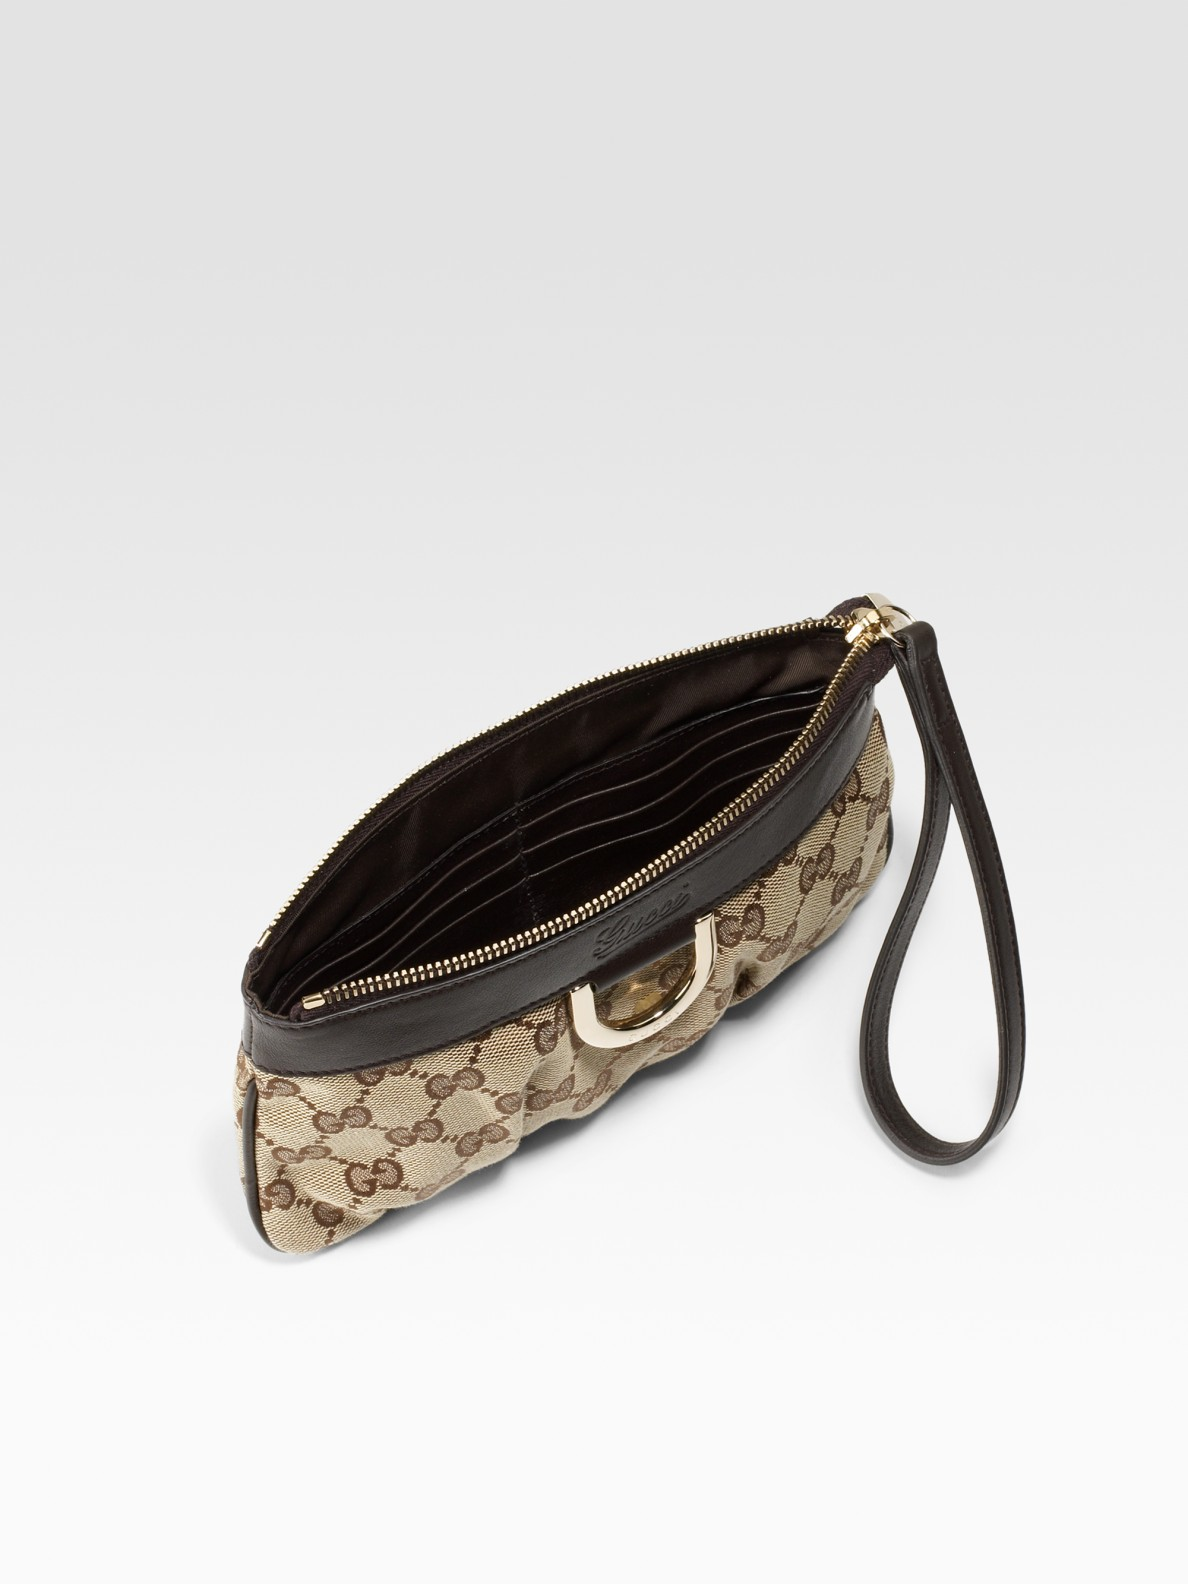 719036a1be66a3 Gucci Wrist Wallet D-gold Wristlet in Natural - Lyst